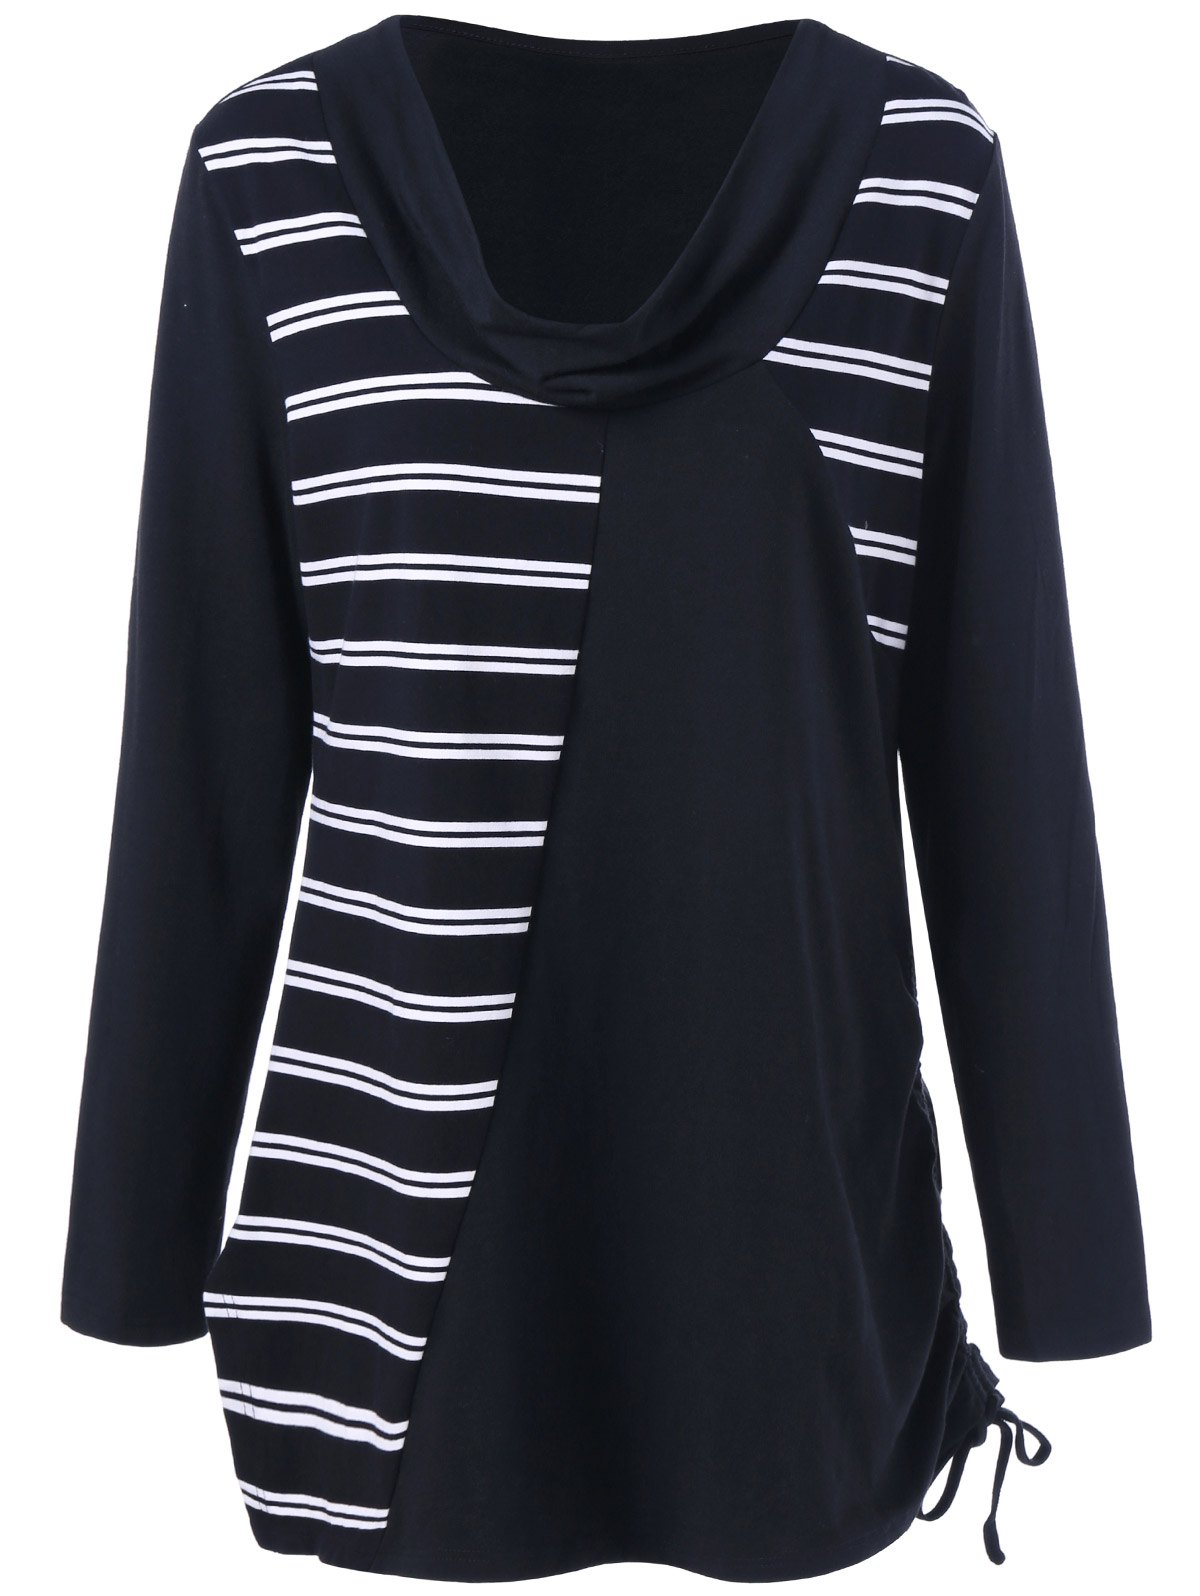 Plus Size Cowl Neck Striped Tunic T-ShirtWomen<br><br><br>Size: 5XL<br>Color: WHITE AND BLACK